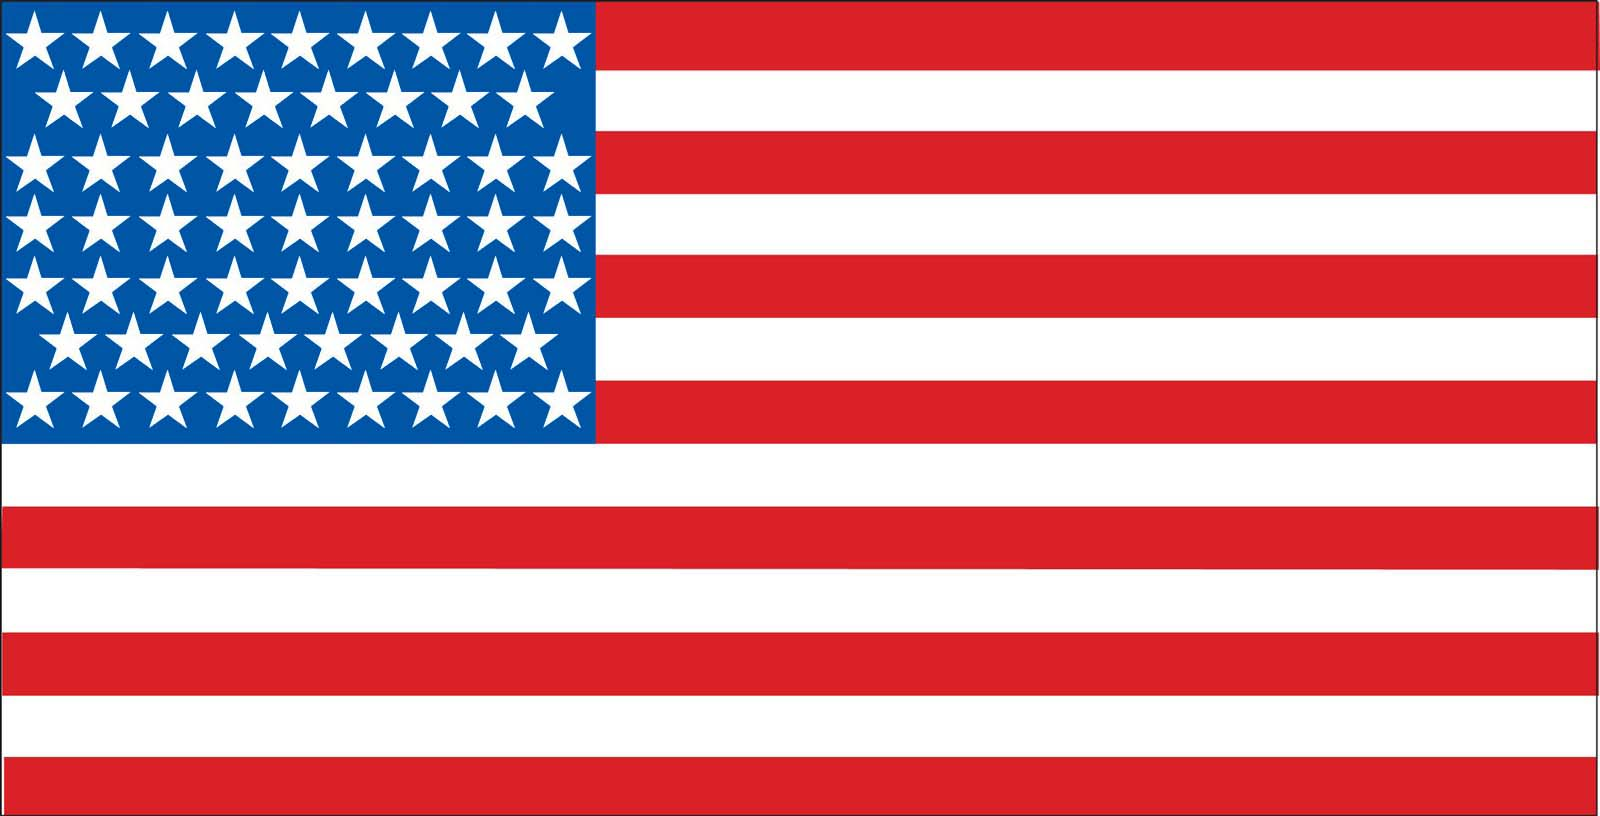 American Flag Wallpapers for Desktop in Full HD Daily Backgrounds 1600x816